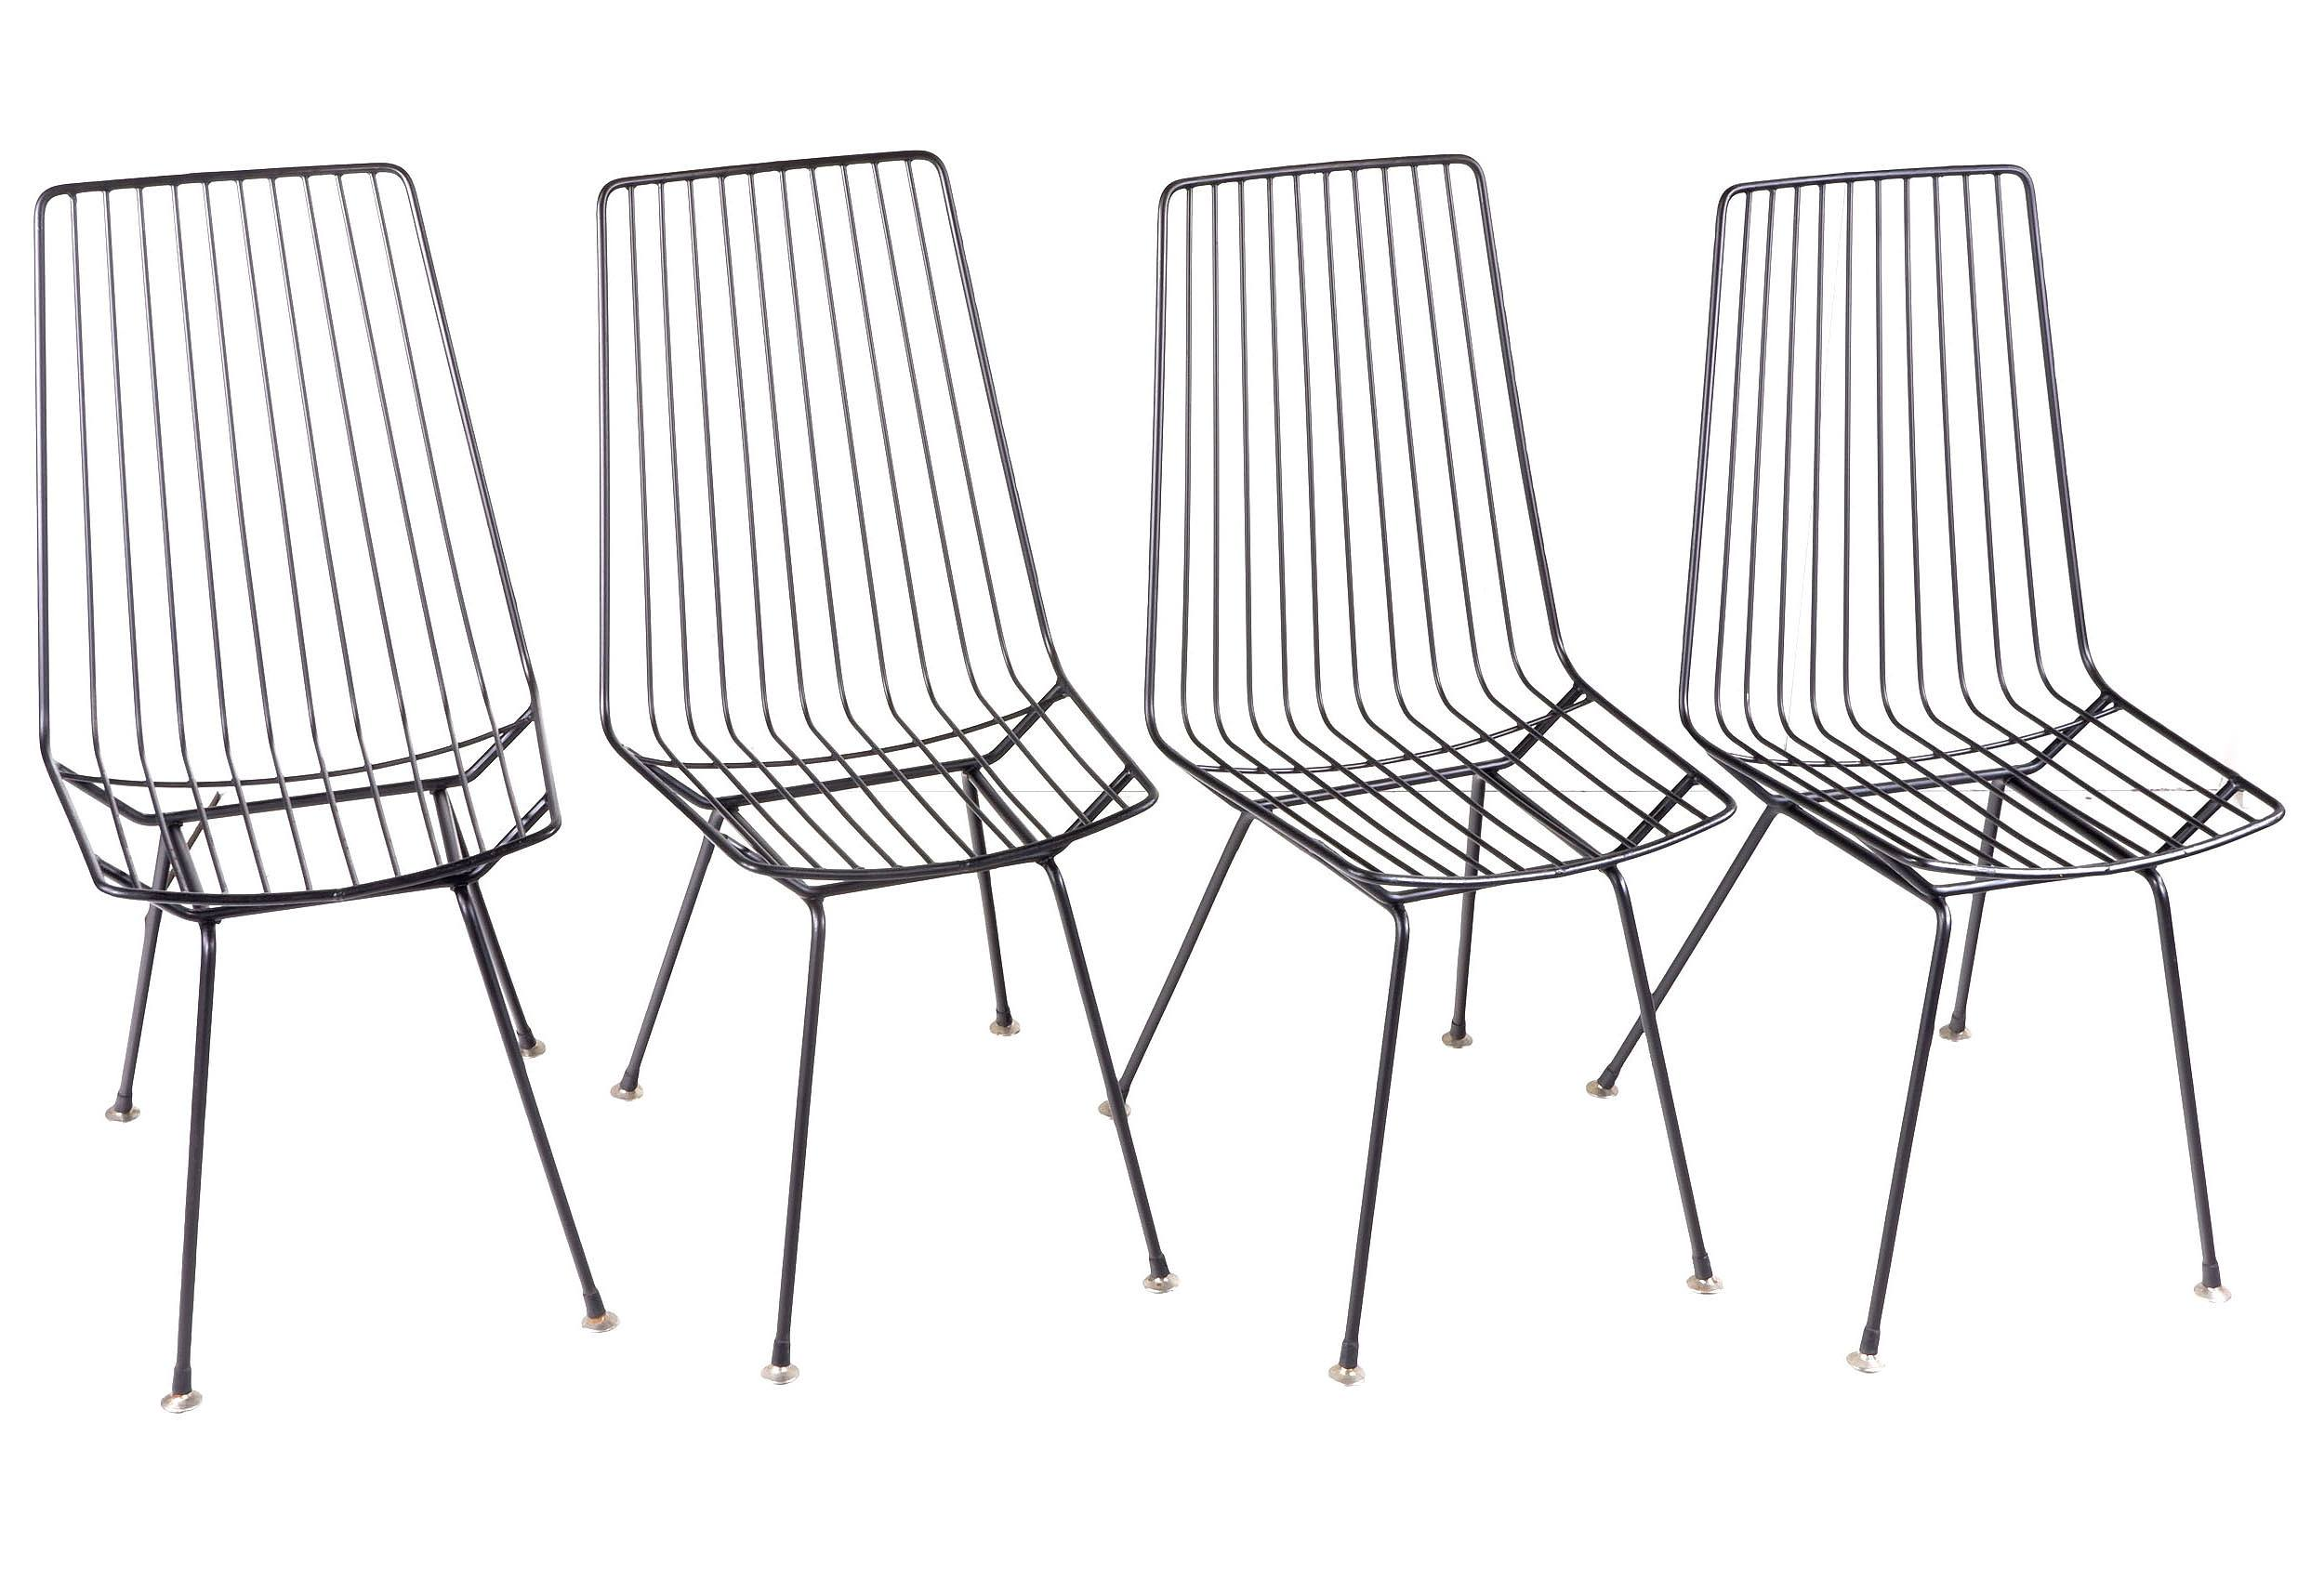 'Set of Eight Steel Wire Chairs Including a Pair of Wire Stools, in the Style of Clement Meadmore'